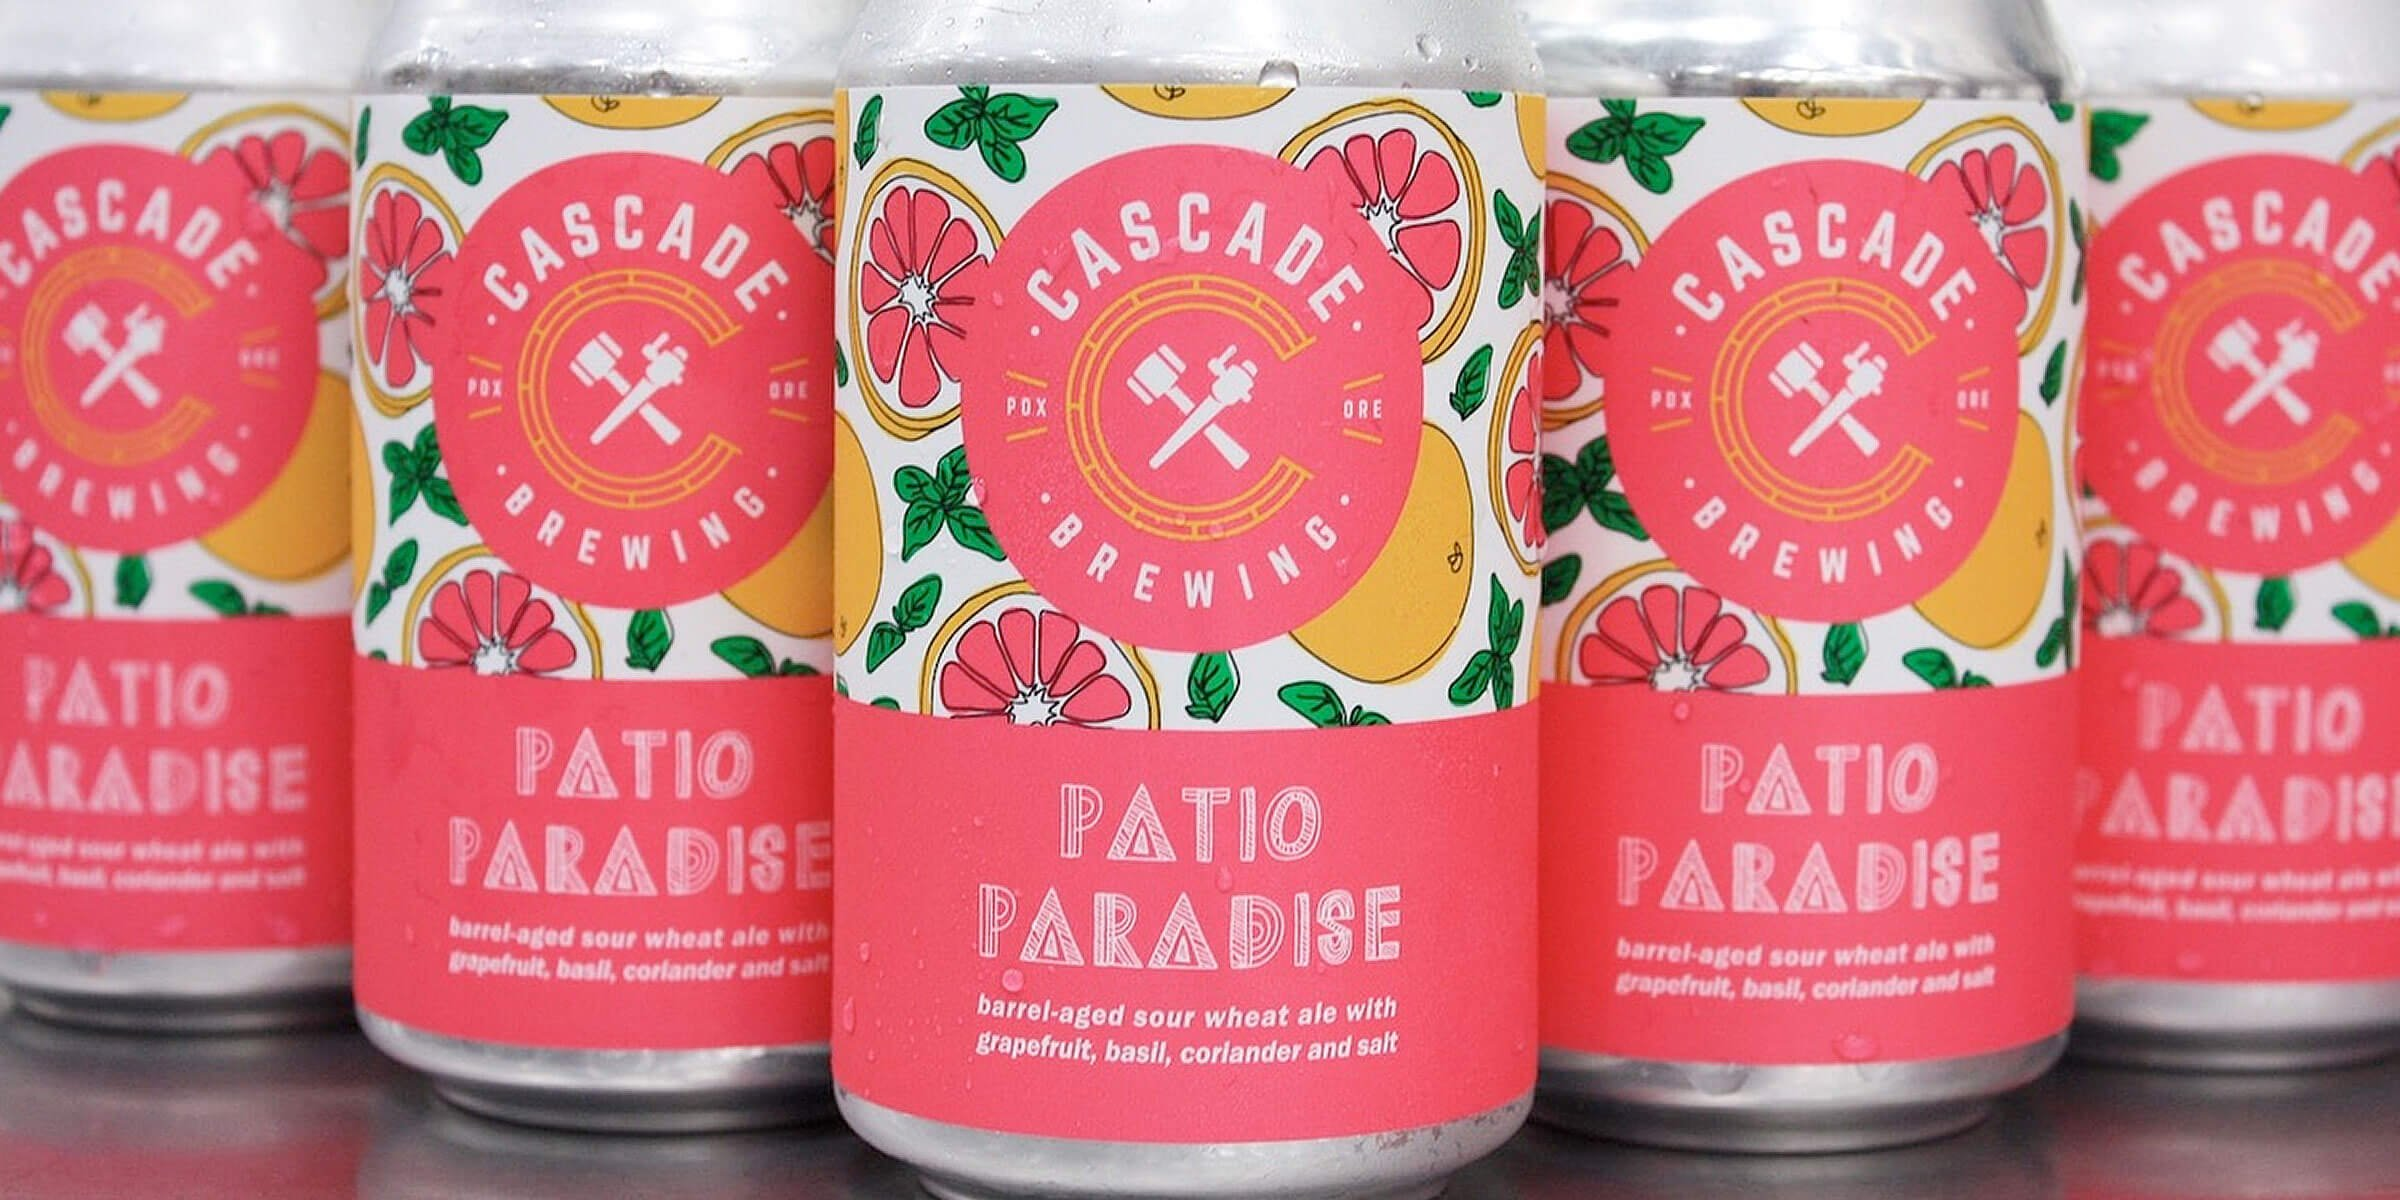 For the holiday weekend, Cascade Brewing released Patio Paradise sour wheat ale and launched its Sour Slushies frozen ale and juice blended beverage.